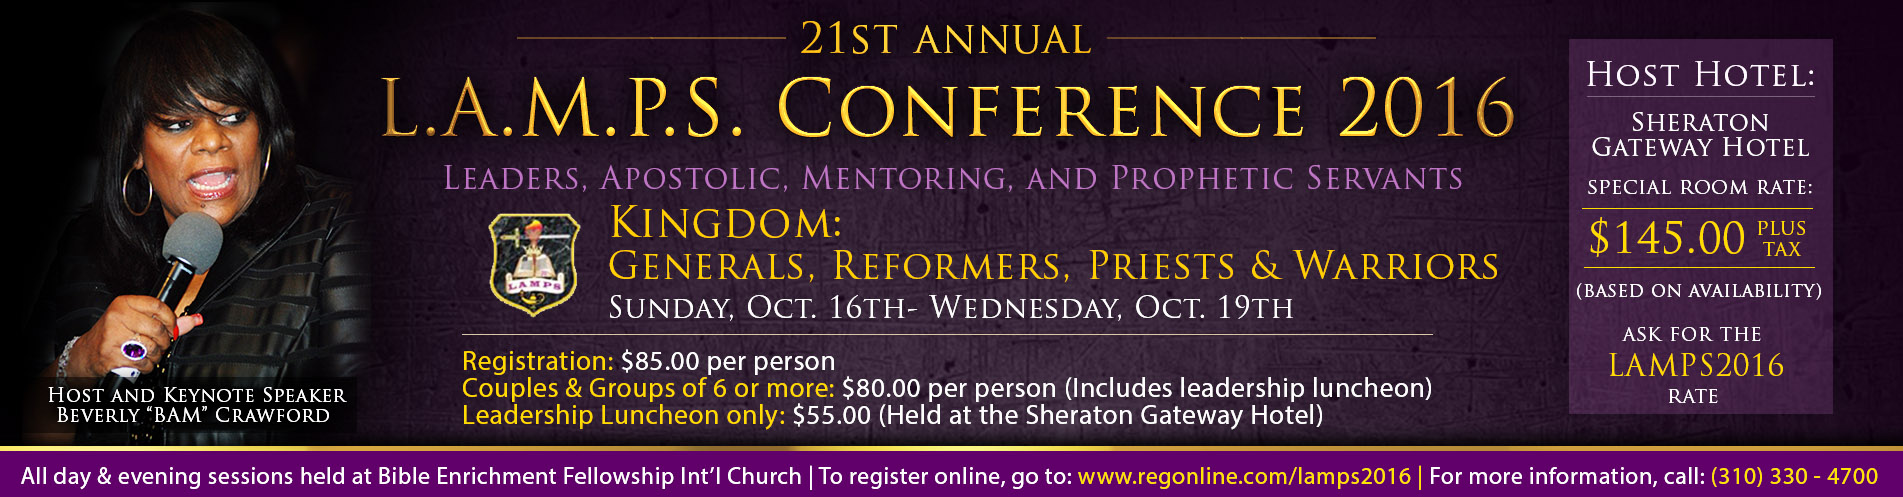 LAMPS Conference Oct 16-19